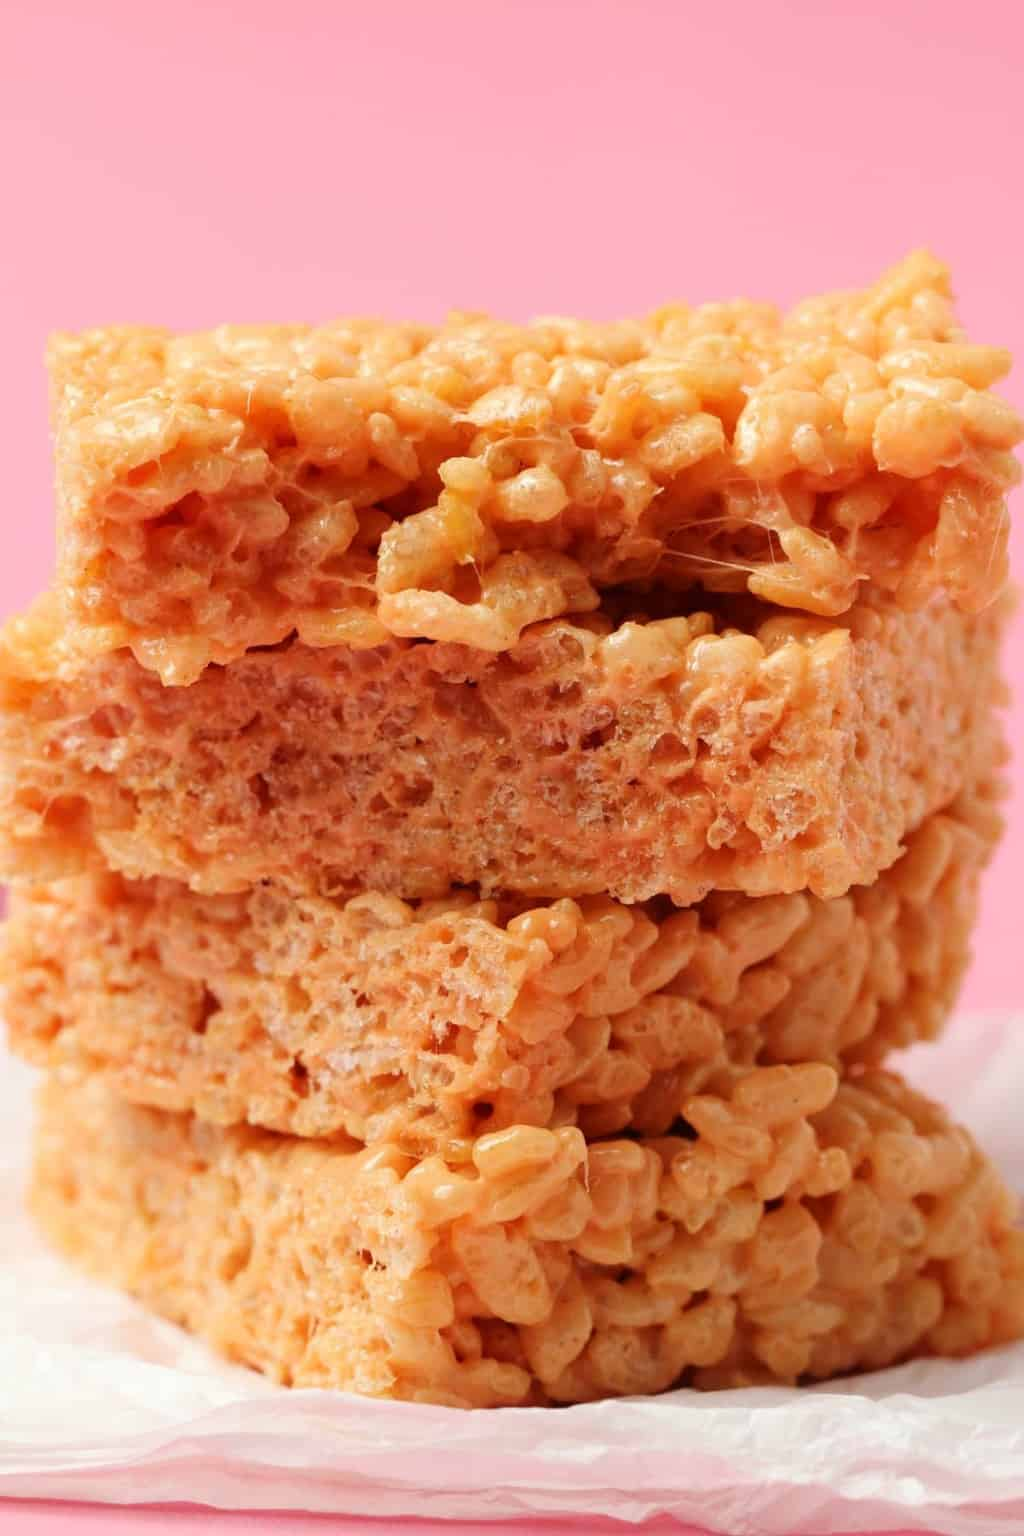 Vegan rice krispie treats stacked up on top of each other, the top square broken in half to show the center.